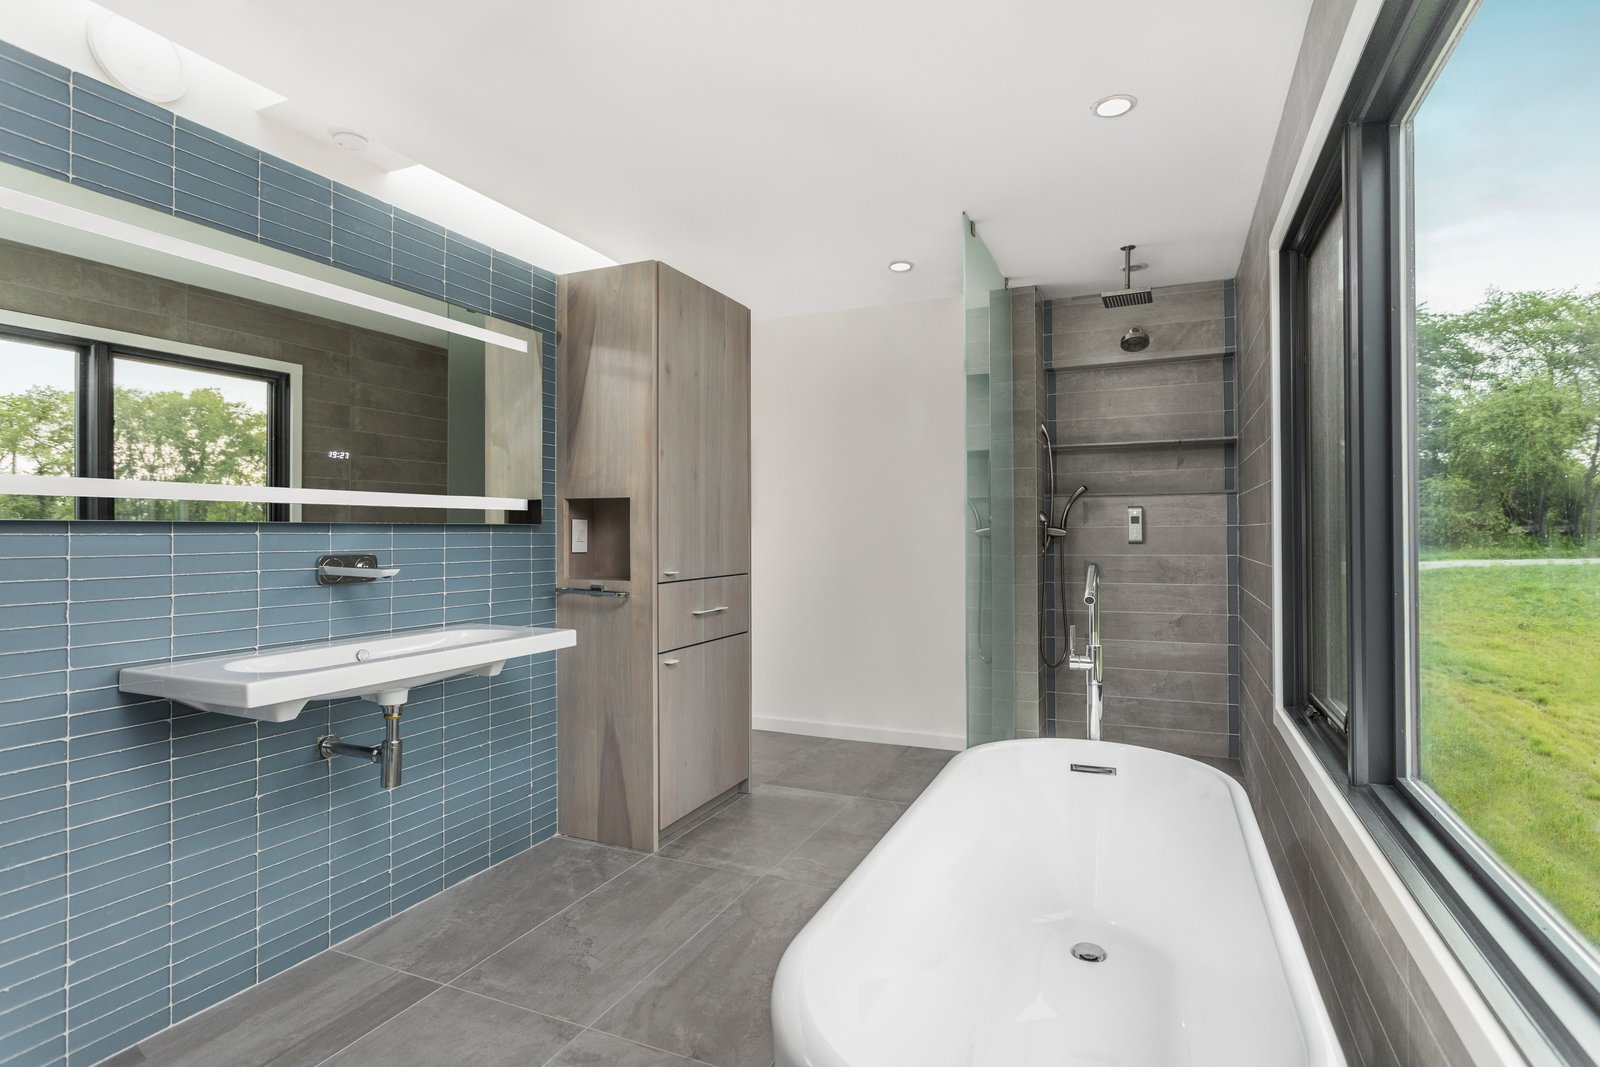 The modern bathroom with an open shower and simple tile.